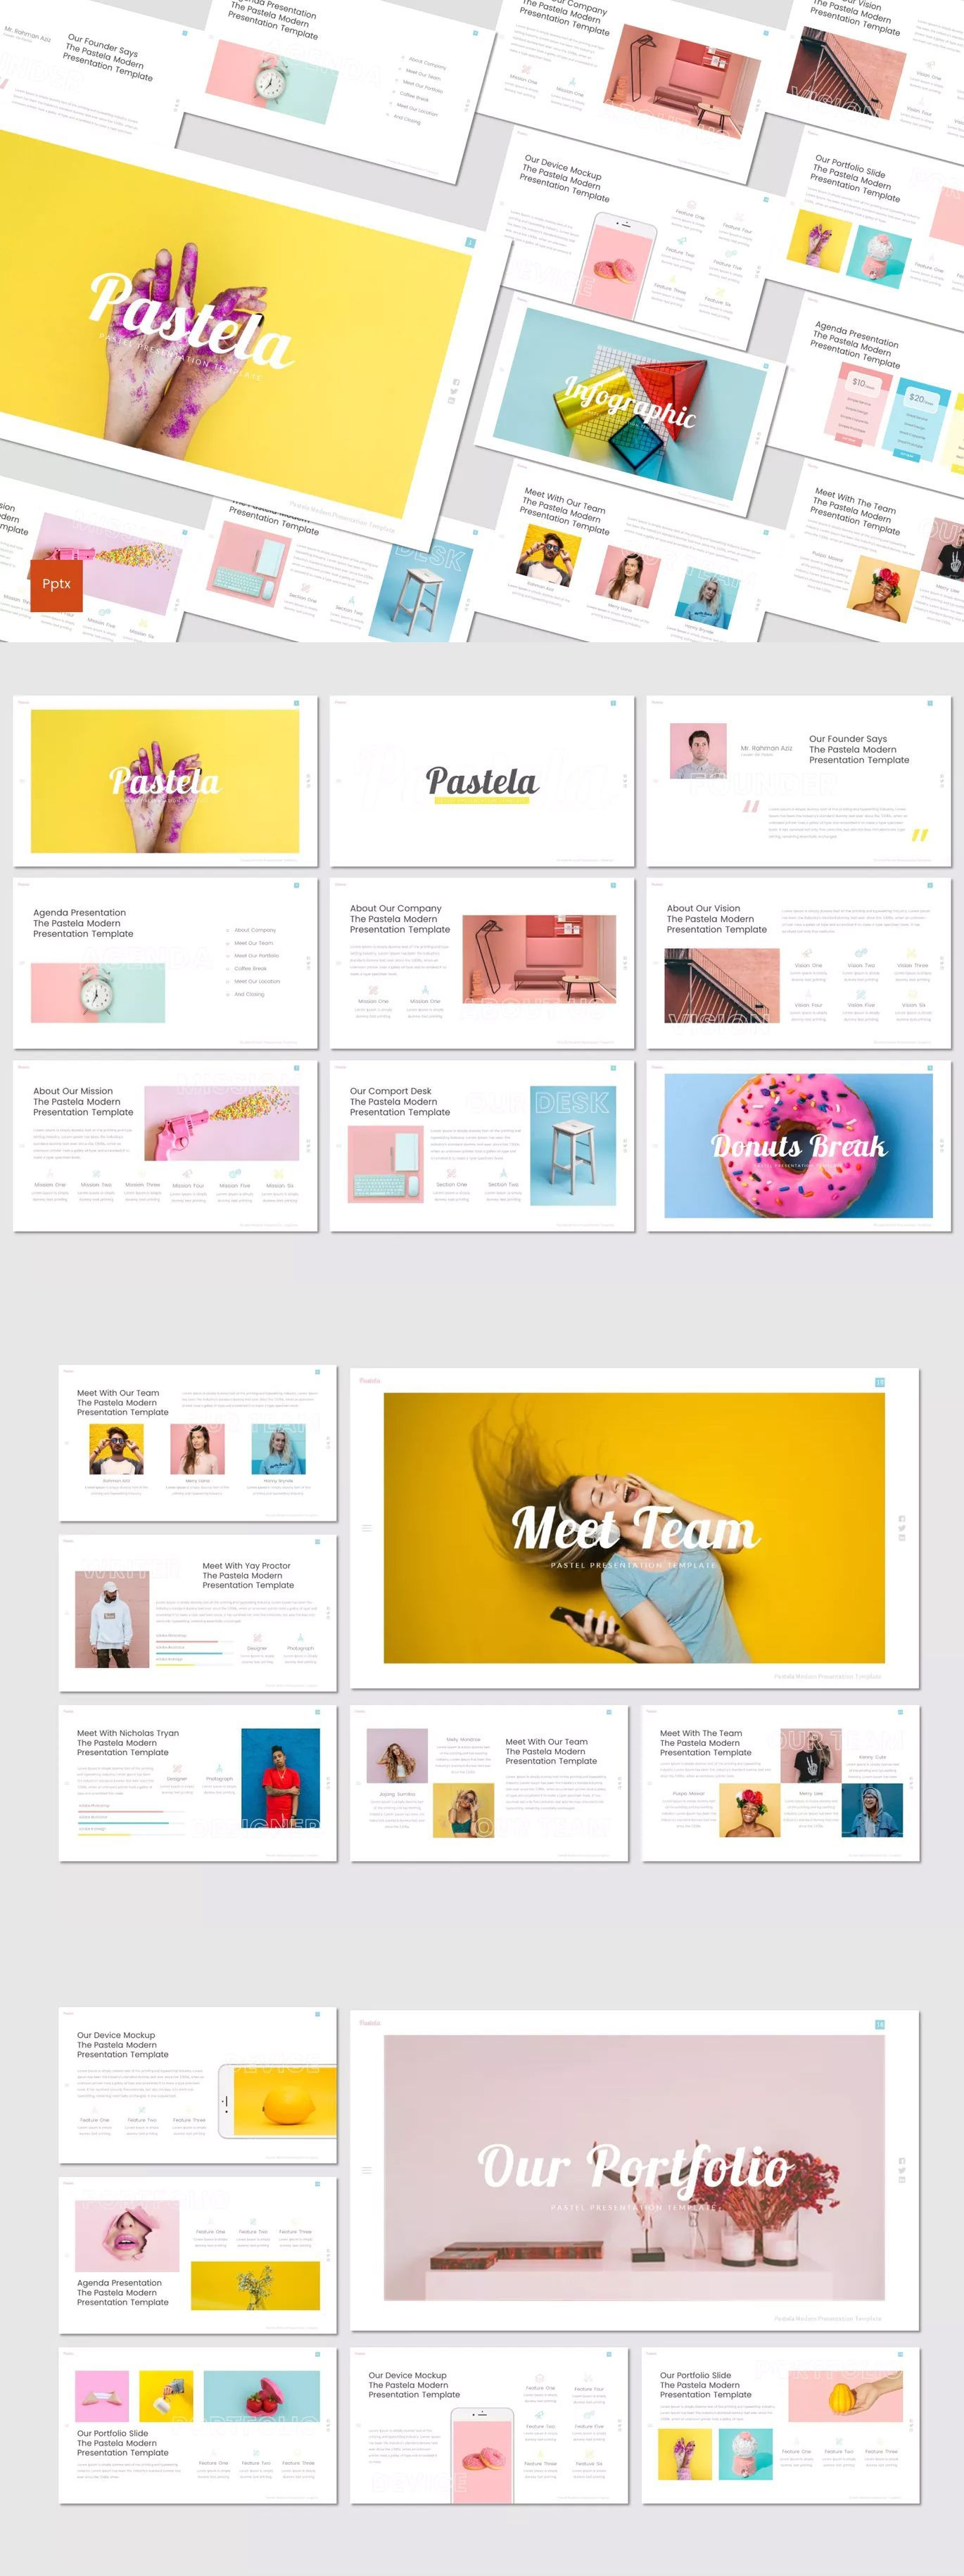 Cake  Powerpoint Presentation Template  Cake  Powerpoint Presentation Template Download